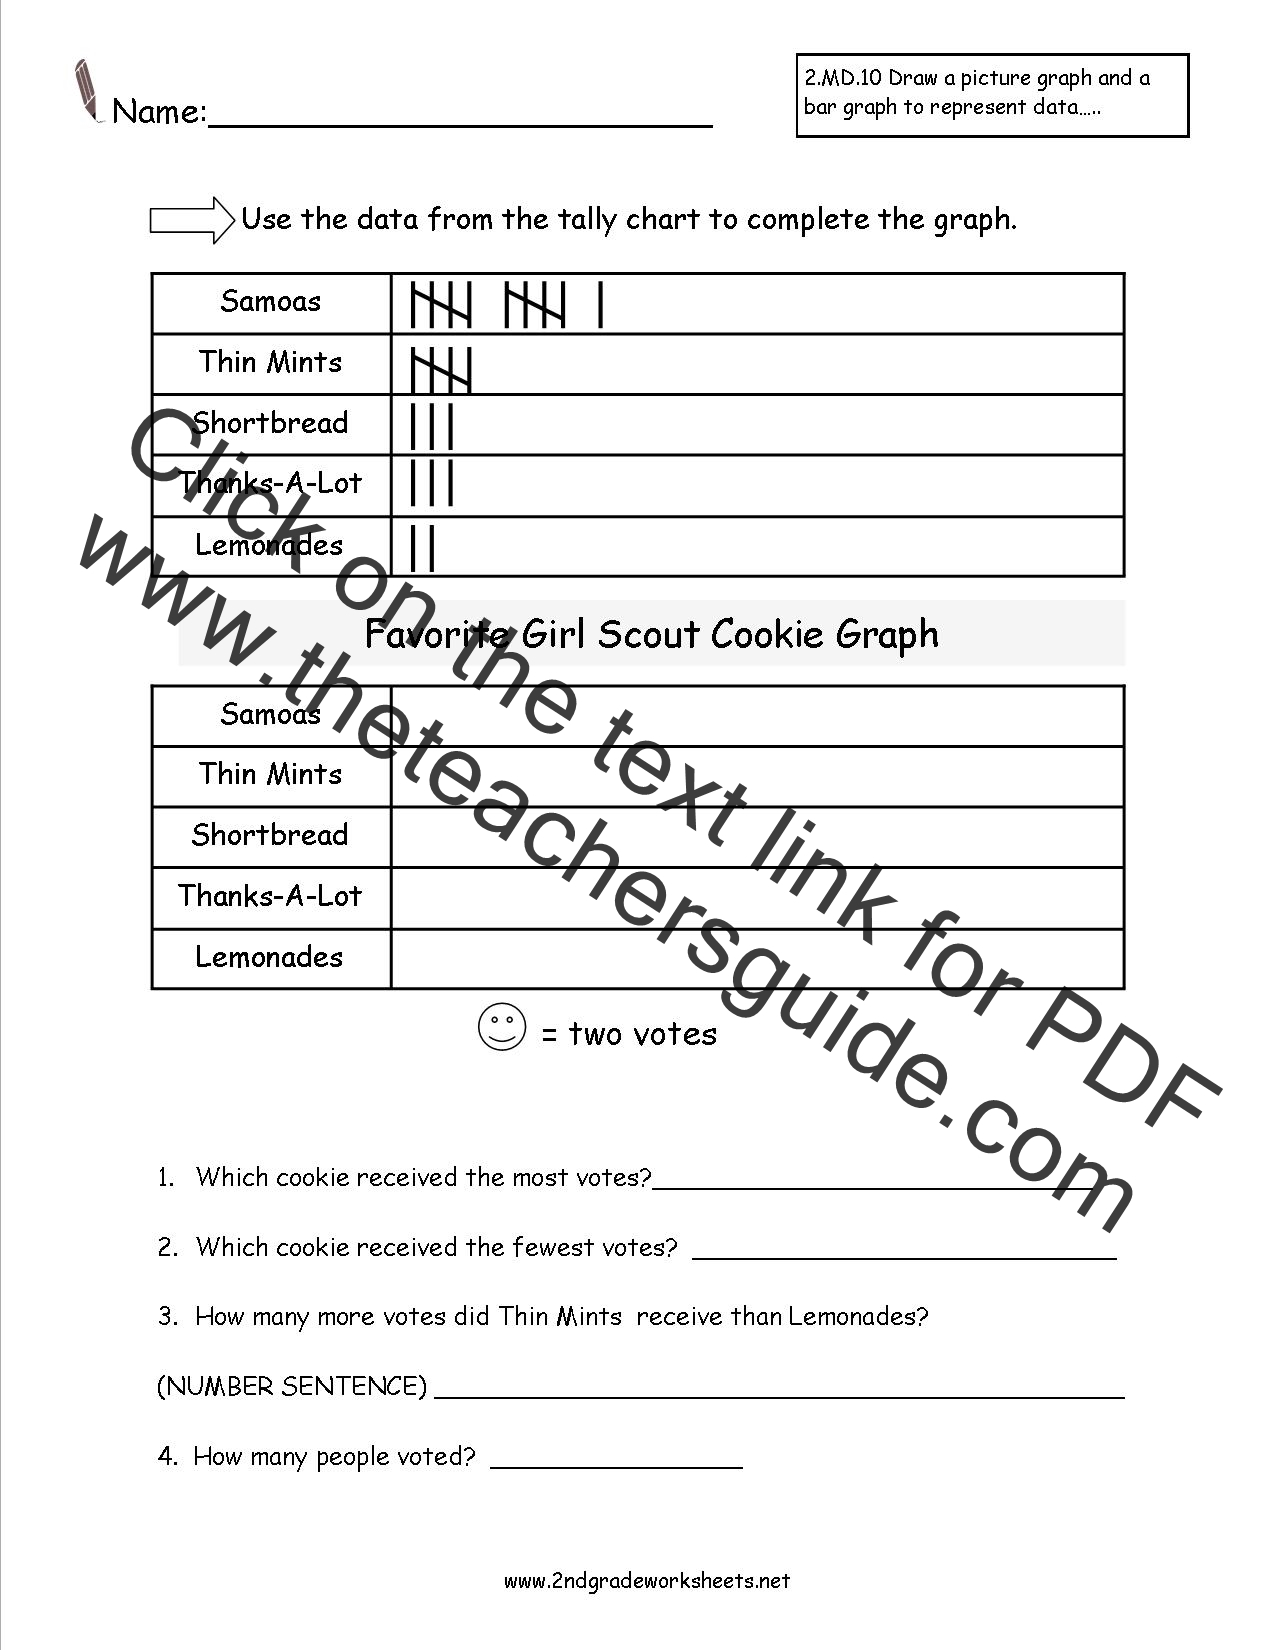 Printables Pictographs Worksheets second grade reading and creating pictograph worksheets favorite girl scout cookie pictograph